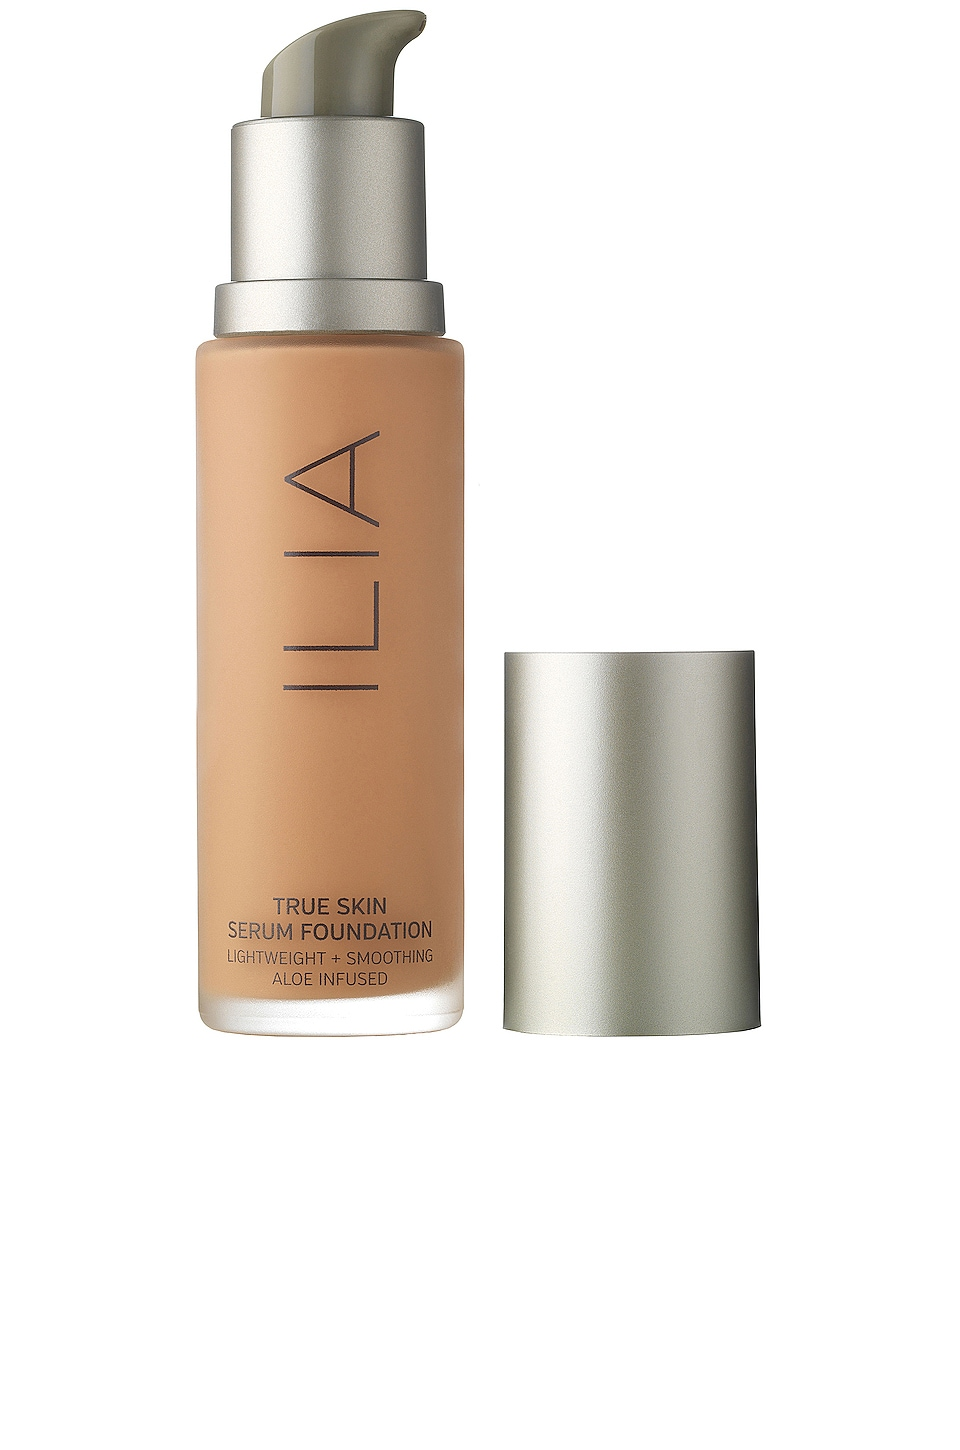 Ilia True Skin Serum Foundation in Maraca